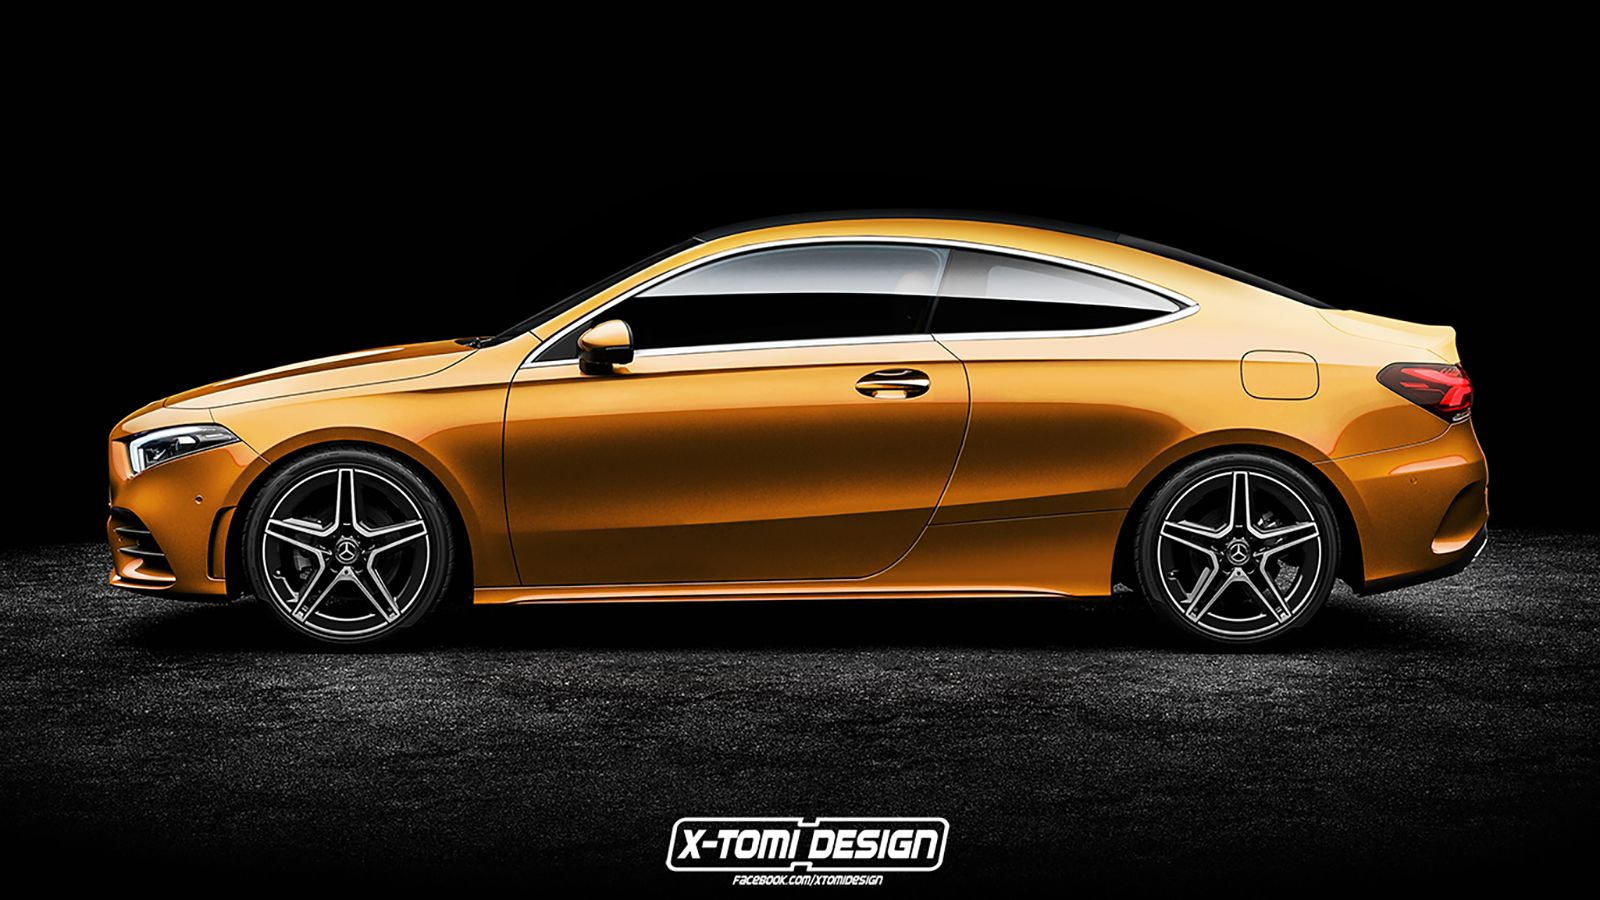 X Tomi S Rendering Of The Mercedes A Class Coupe Has Us Salivating With Desire Top Speed Mercedes A Class Benz A Class Mercedes Benz